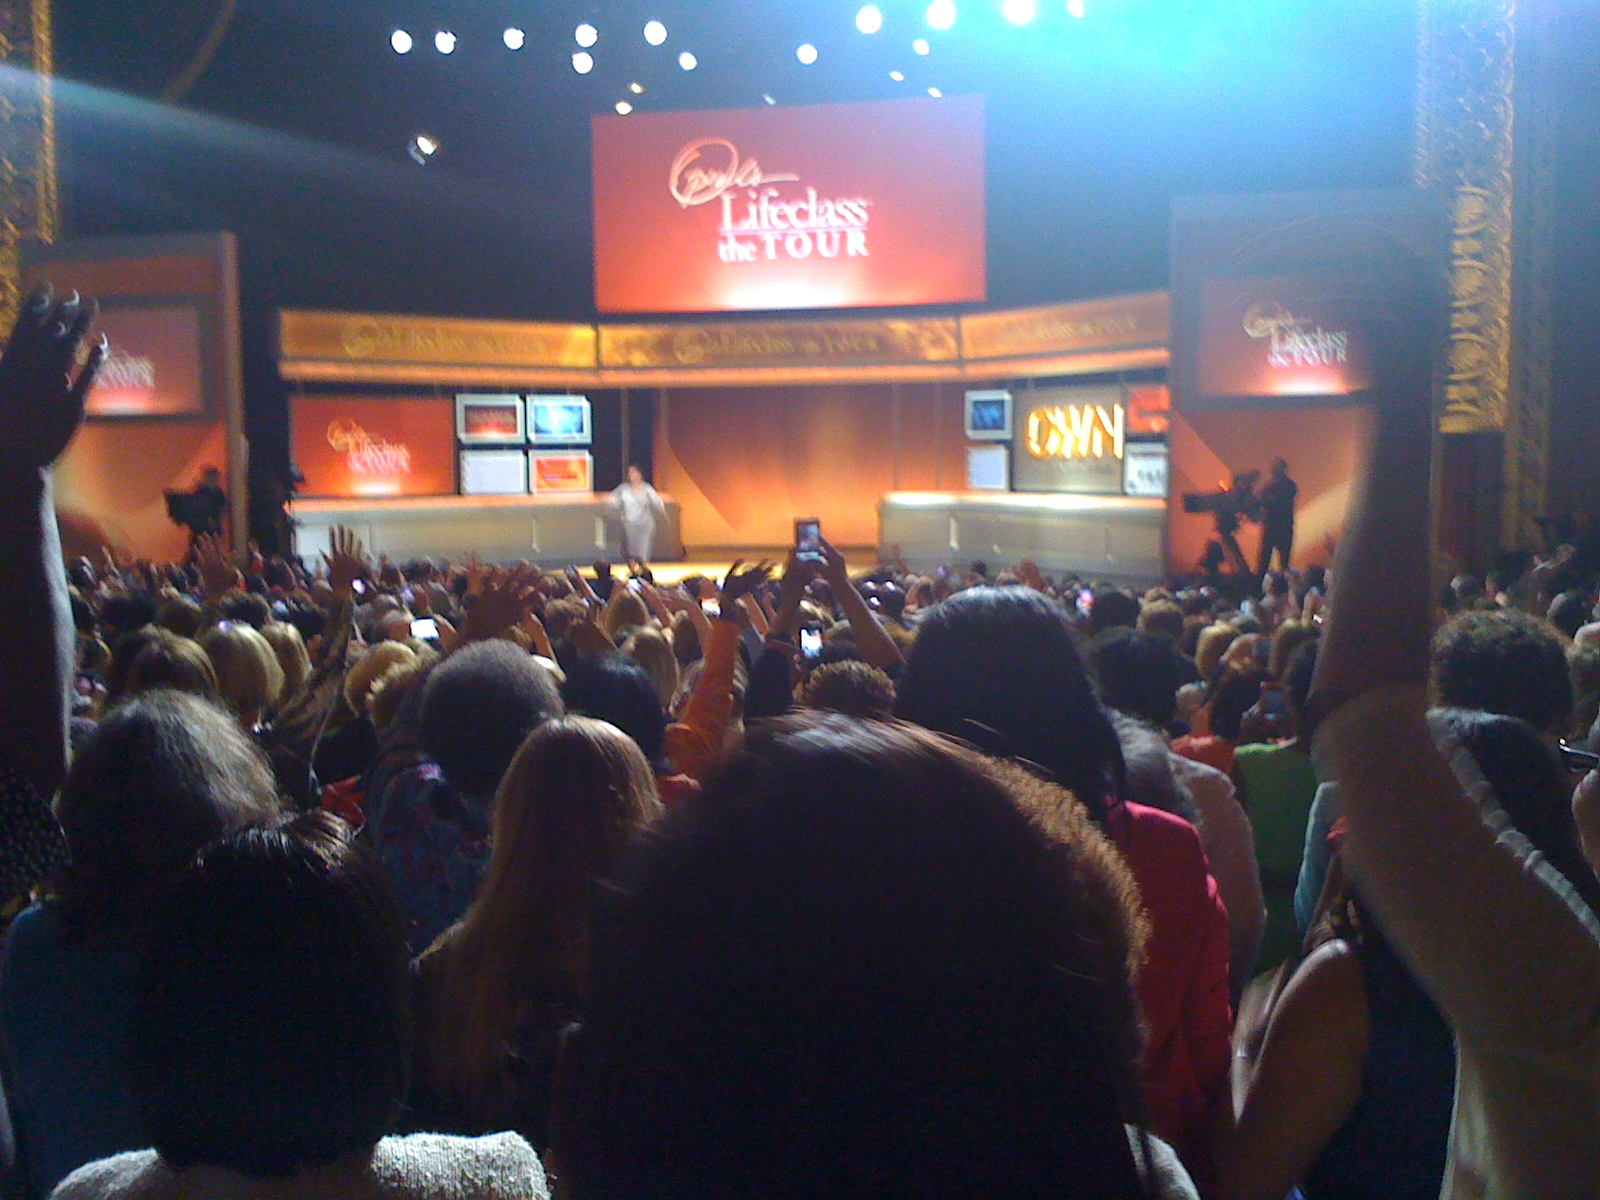 Oprah's Lifeclass Tour